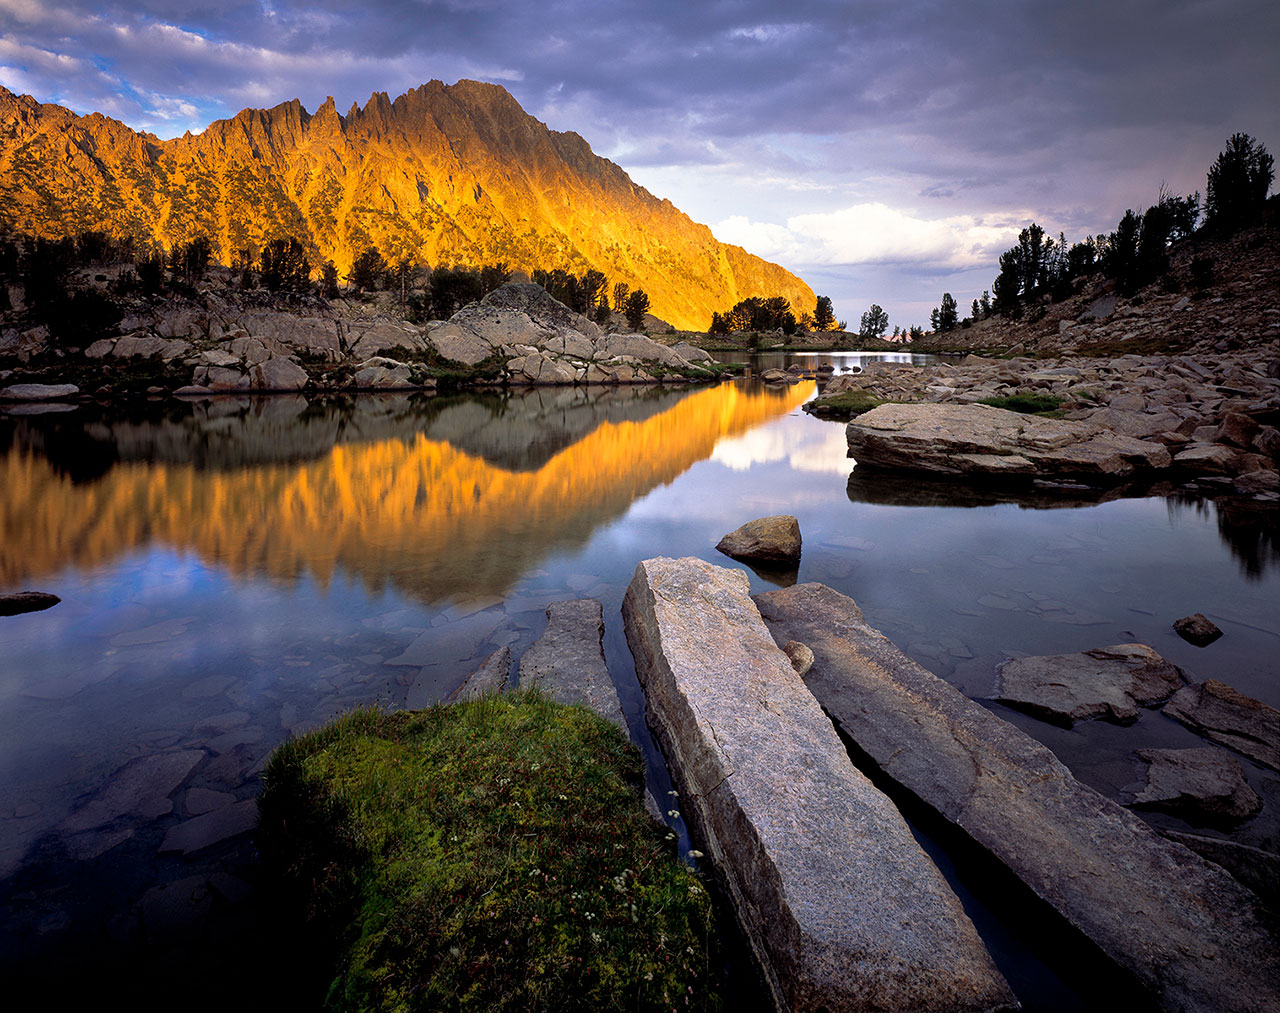 Mountains with a lake at sunset